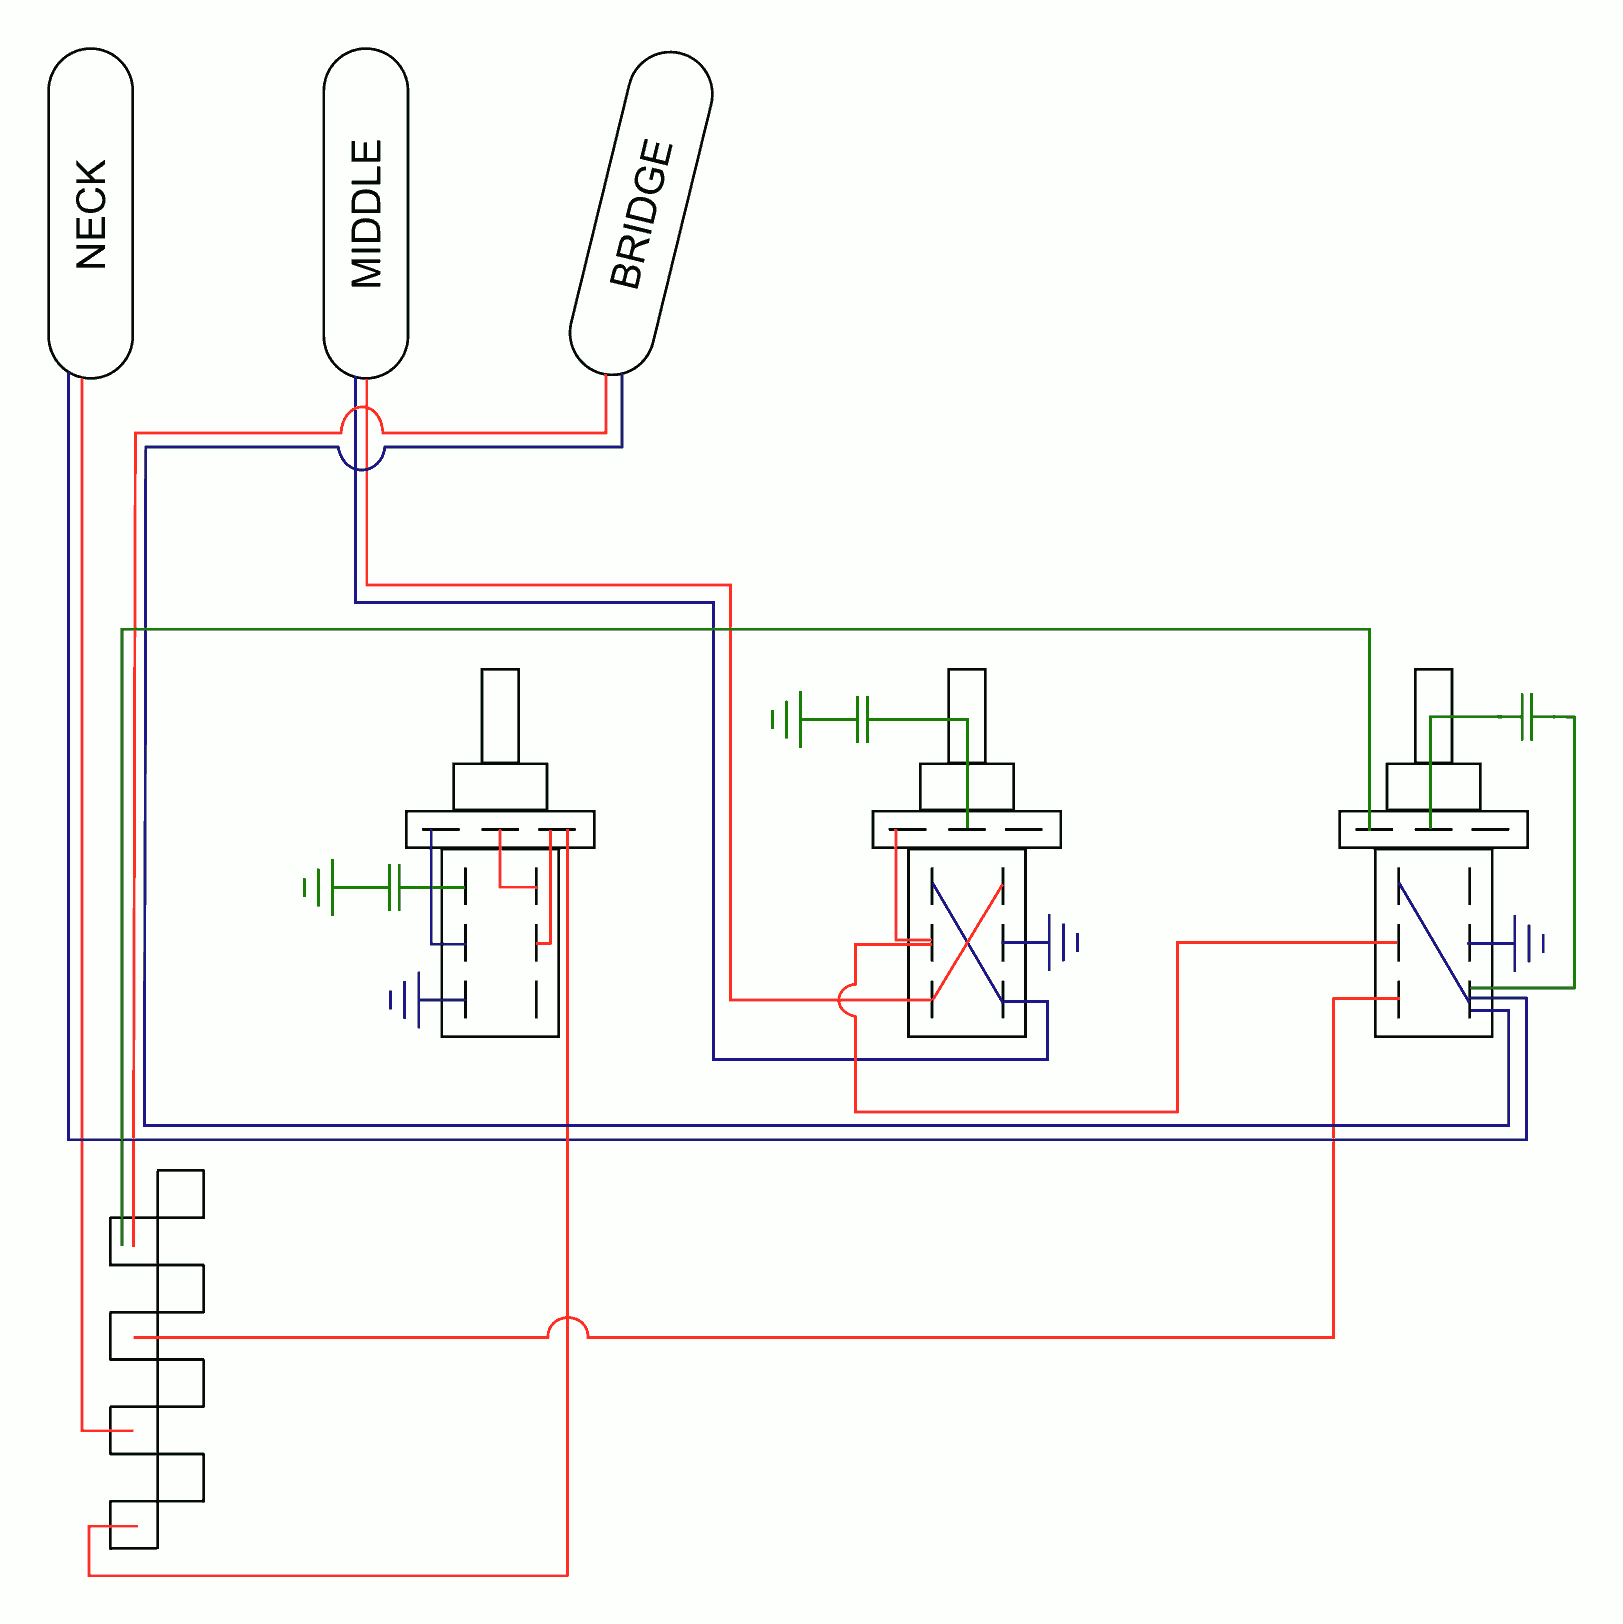 strat series parallel wiring diagram   36 wiring diagram